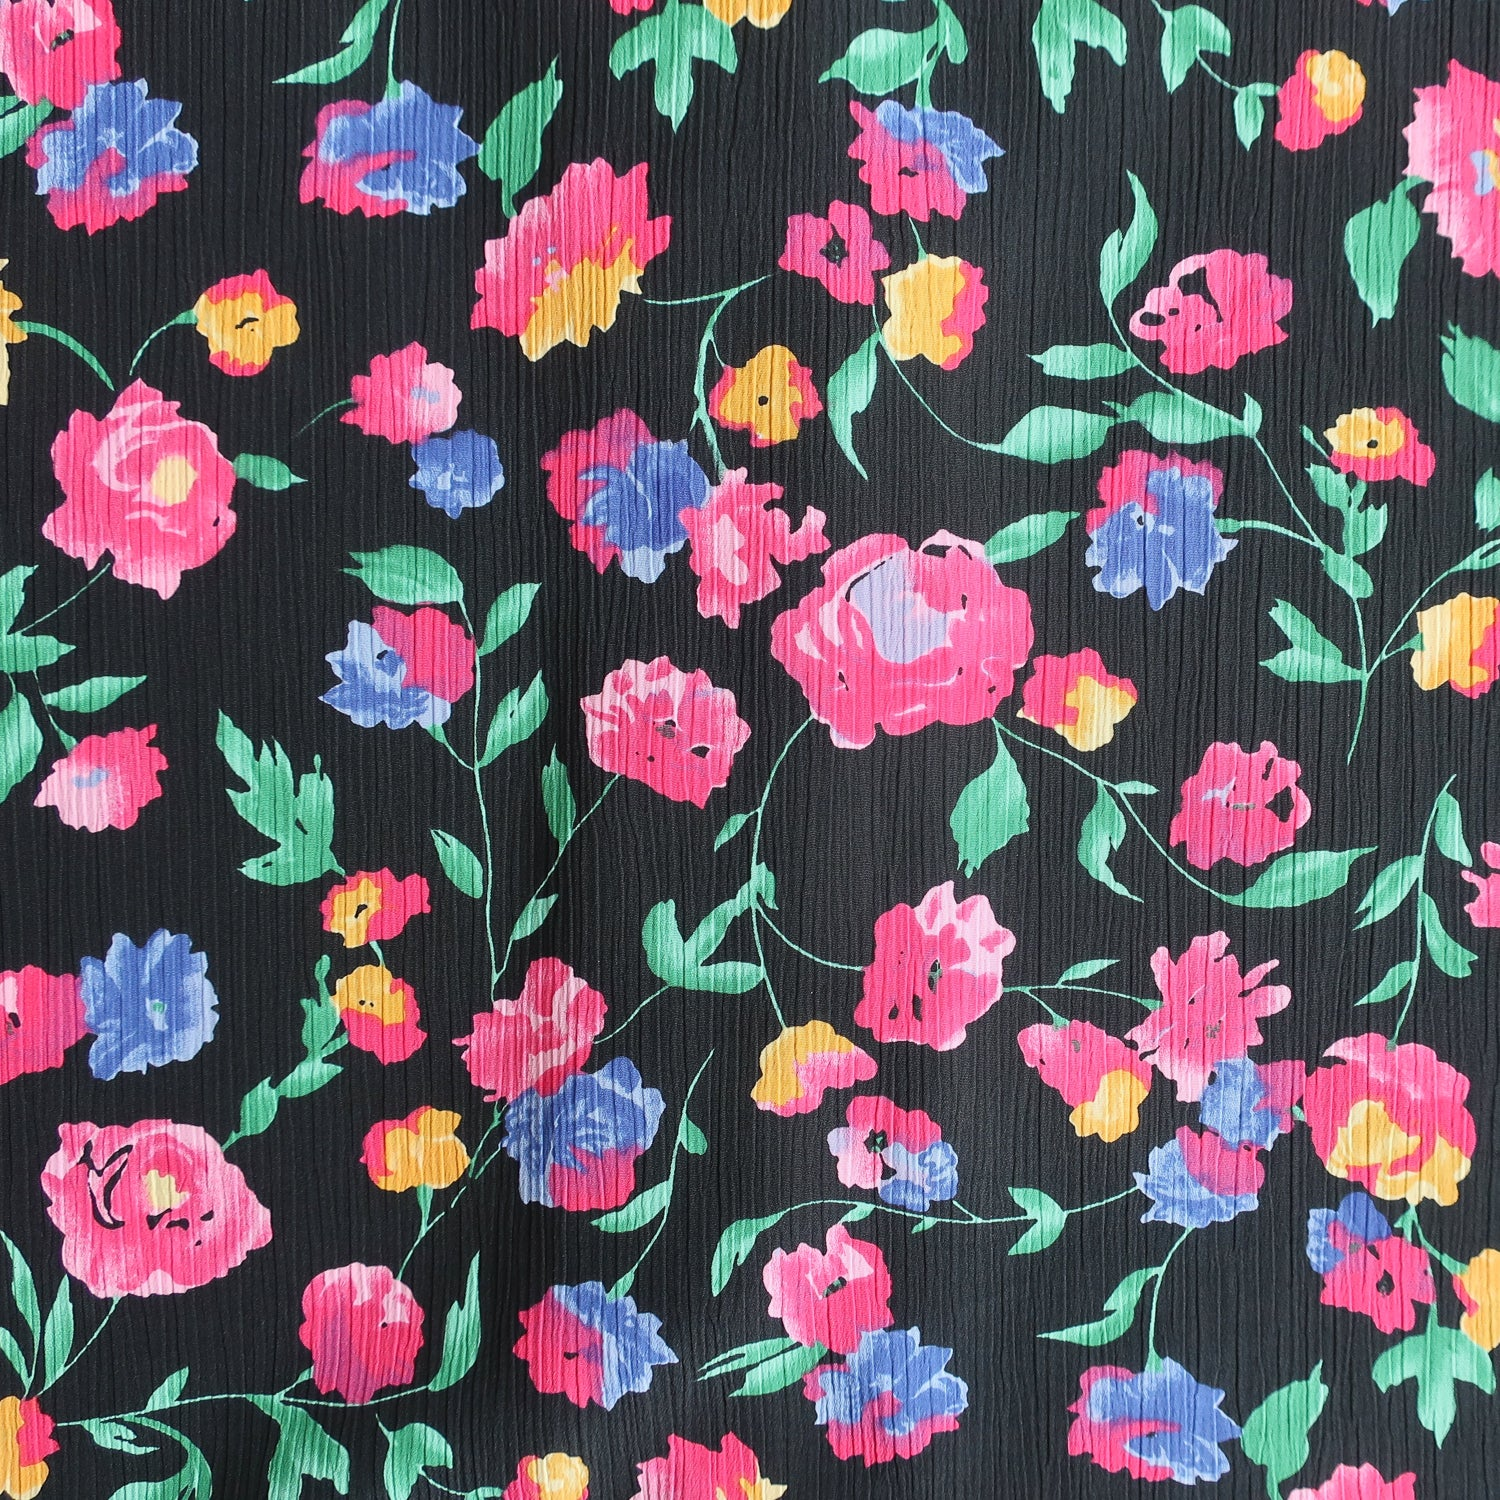 Second Room Vintage Clothing. Vintage short sleeve button up blouse with floral print in pink, yellow, blue, green and purple on black. Free Shipping on all orders within North America.